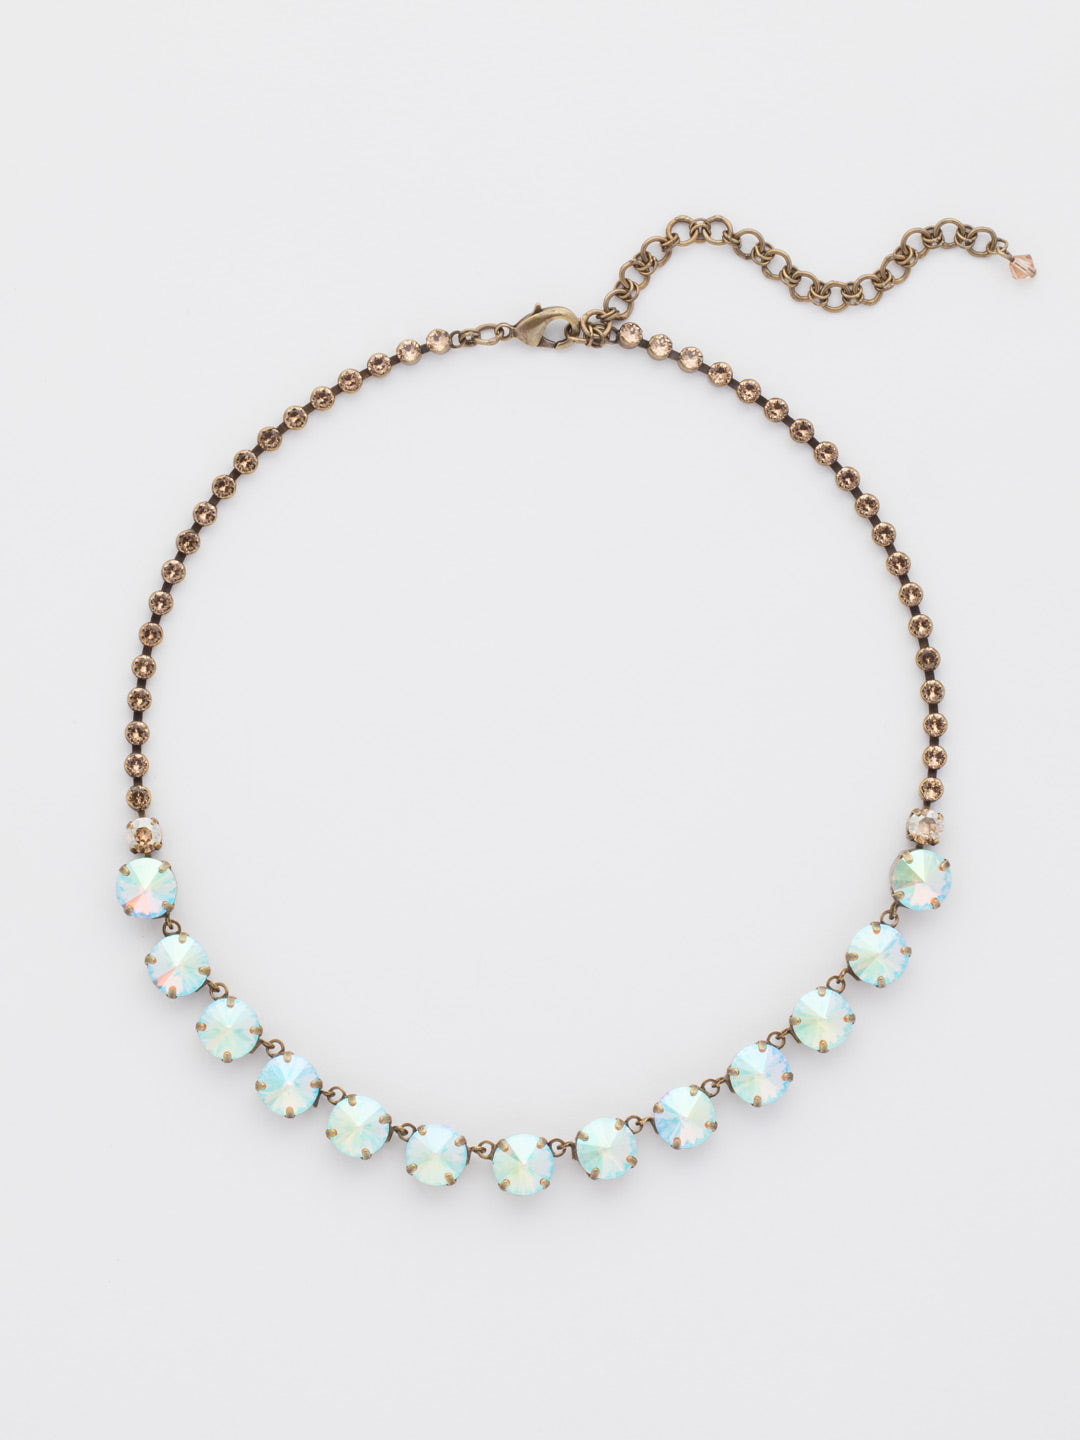 Repeating Rivoli Classic Line Necklace - NCU19AGNT